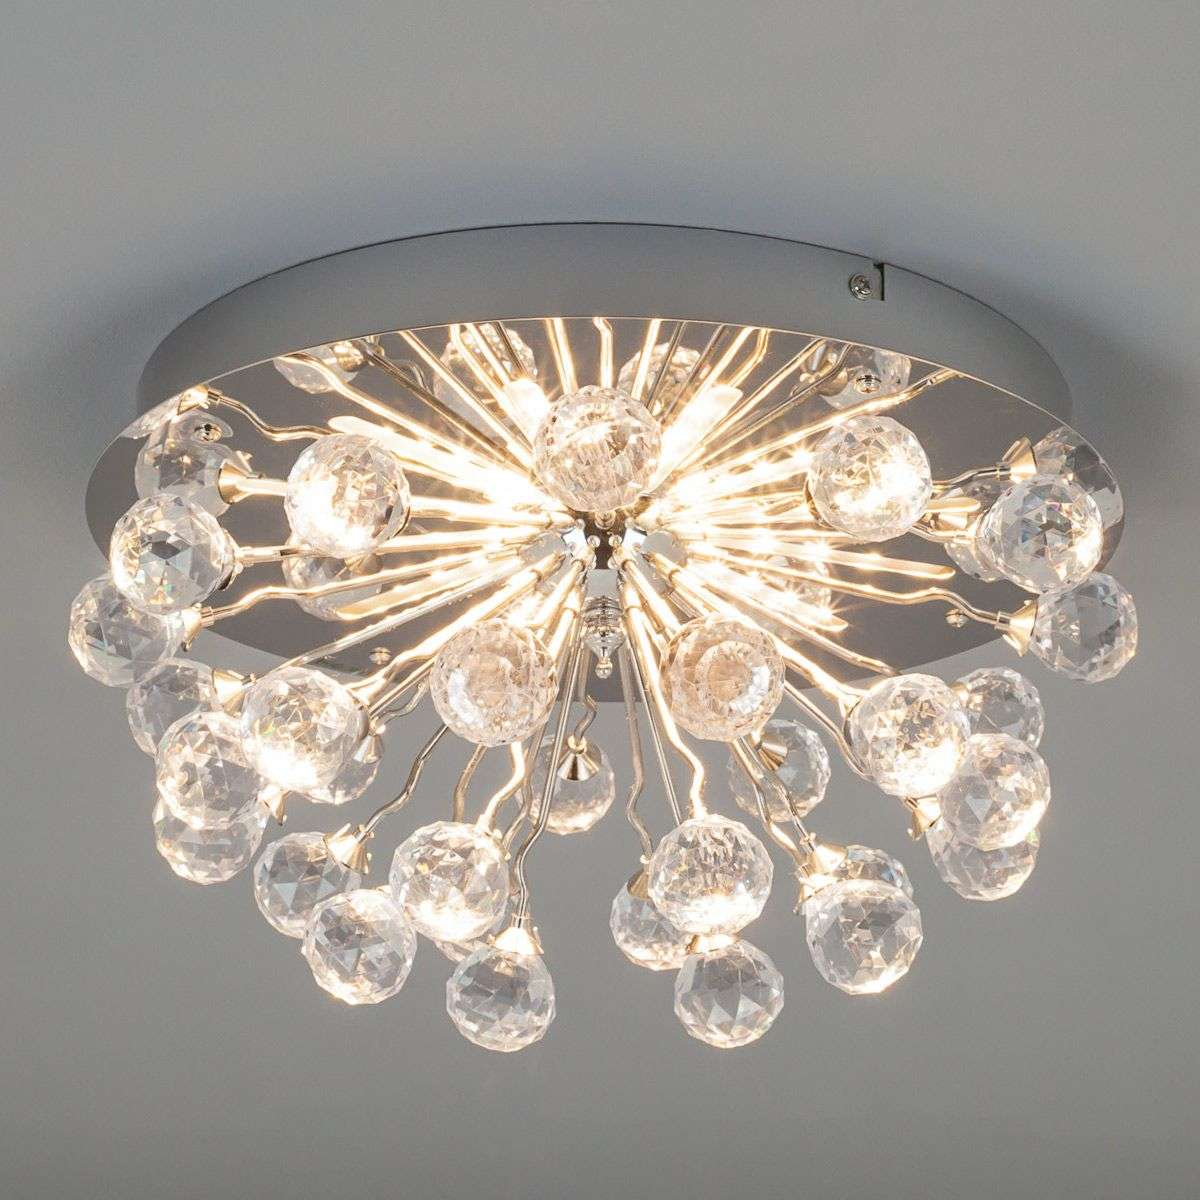 Appealing LED ceiling light Theodora-9950329-31